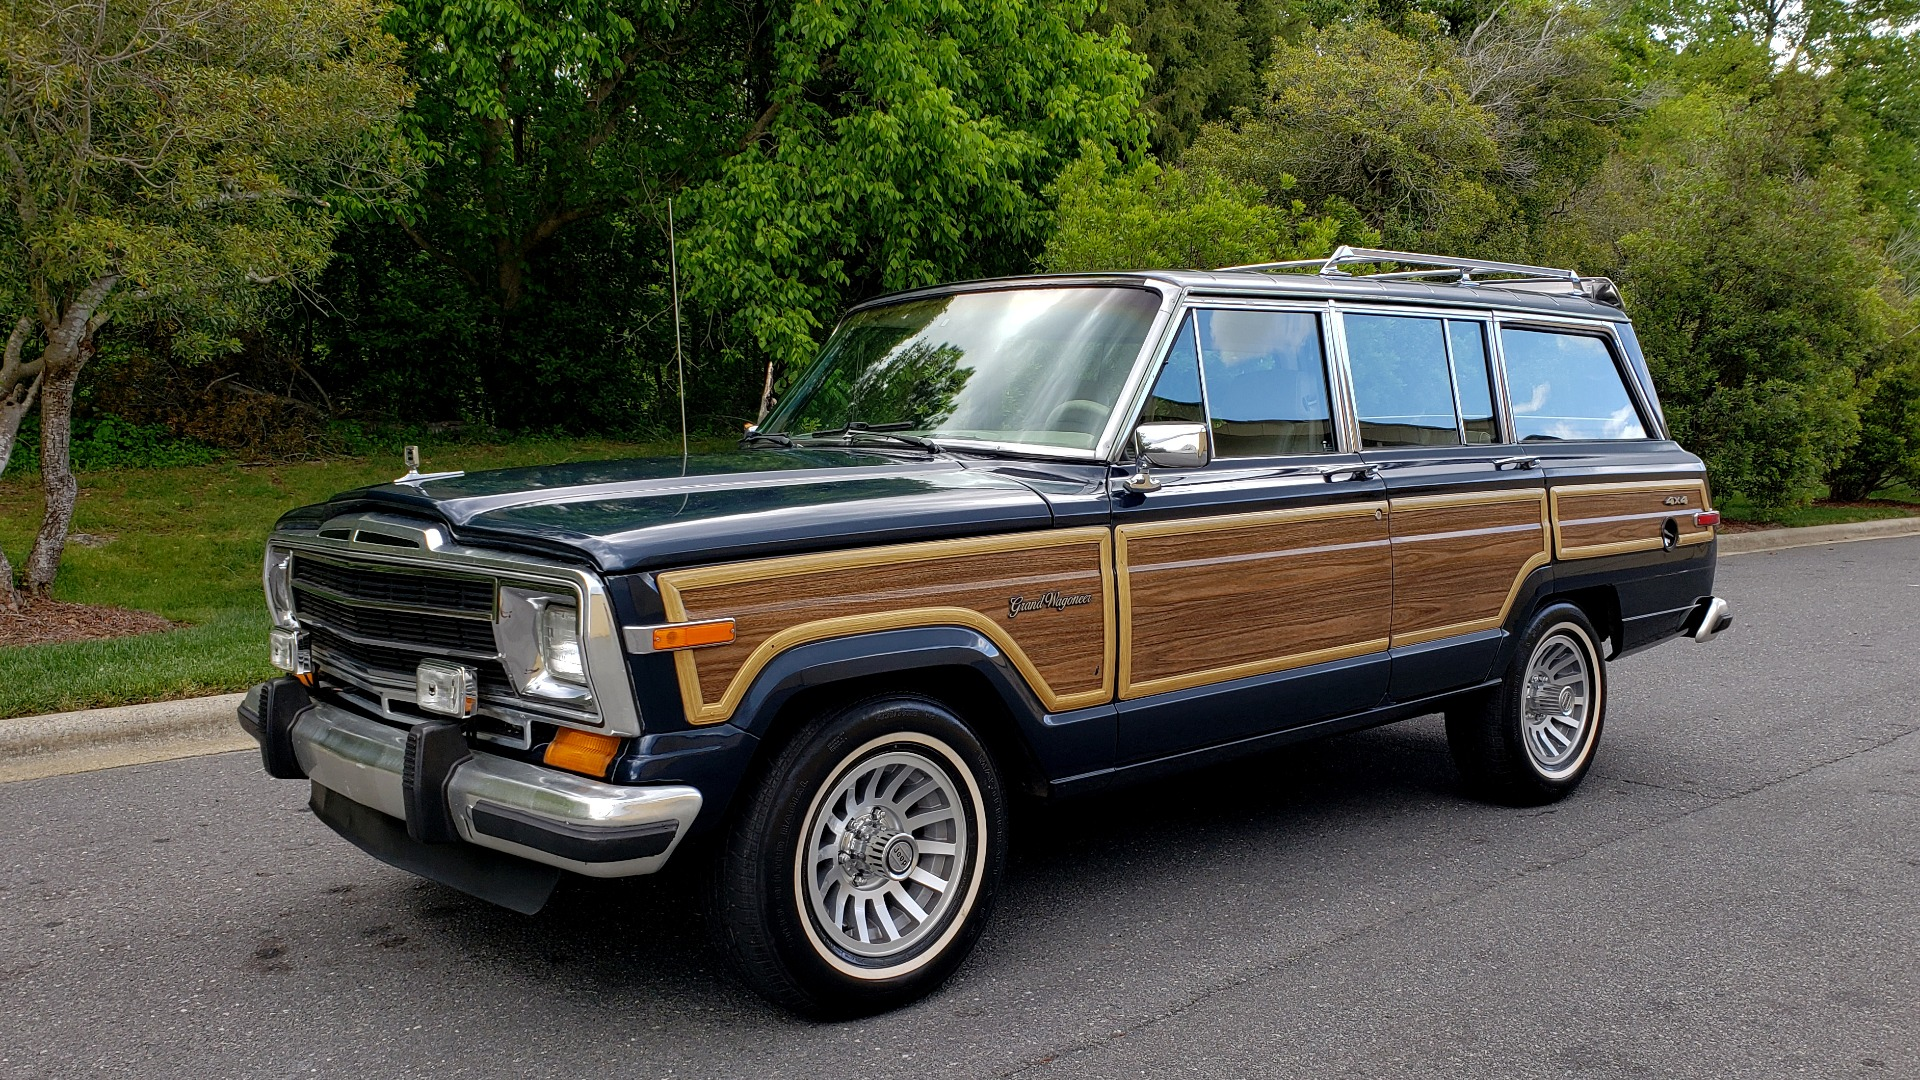 Used 1989 Jeep GRAND WAGONEER 4x4 / 5.9L V8 / 3-SPEED AUTO / PIONEER STEREO for sale Sold at Formula Imports in Charlotte NC 28227 1